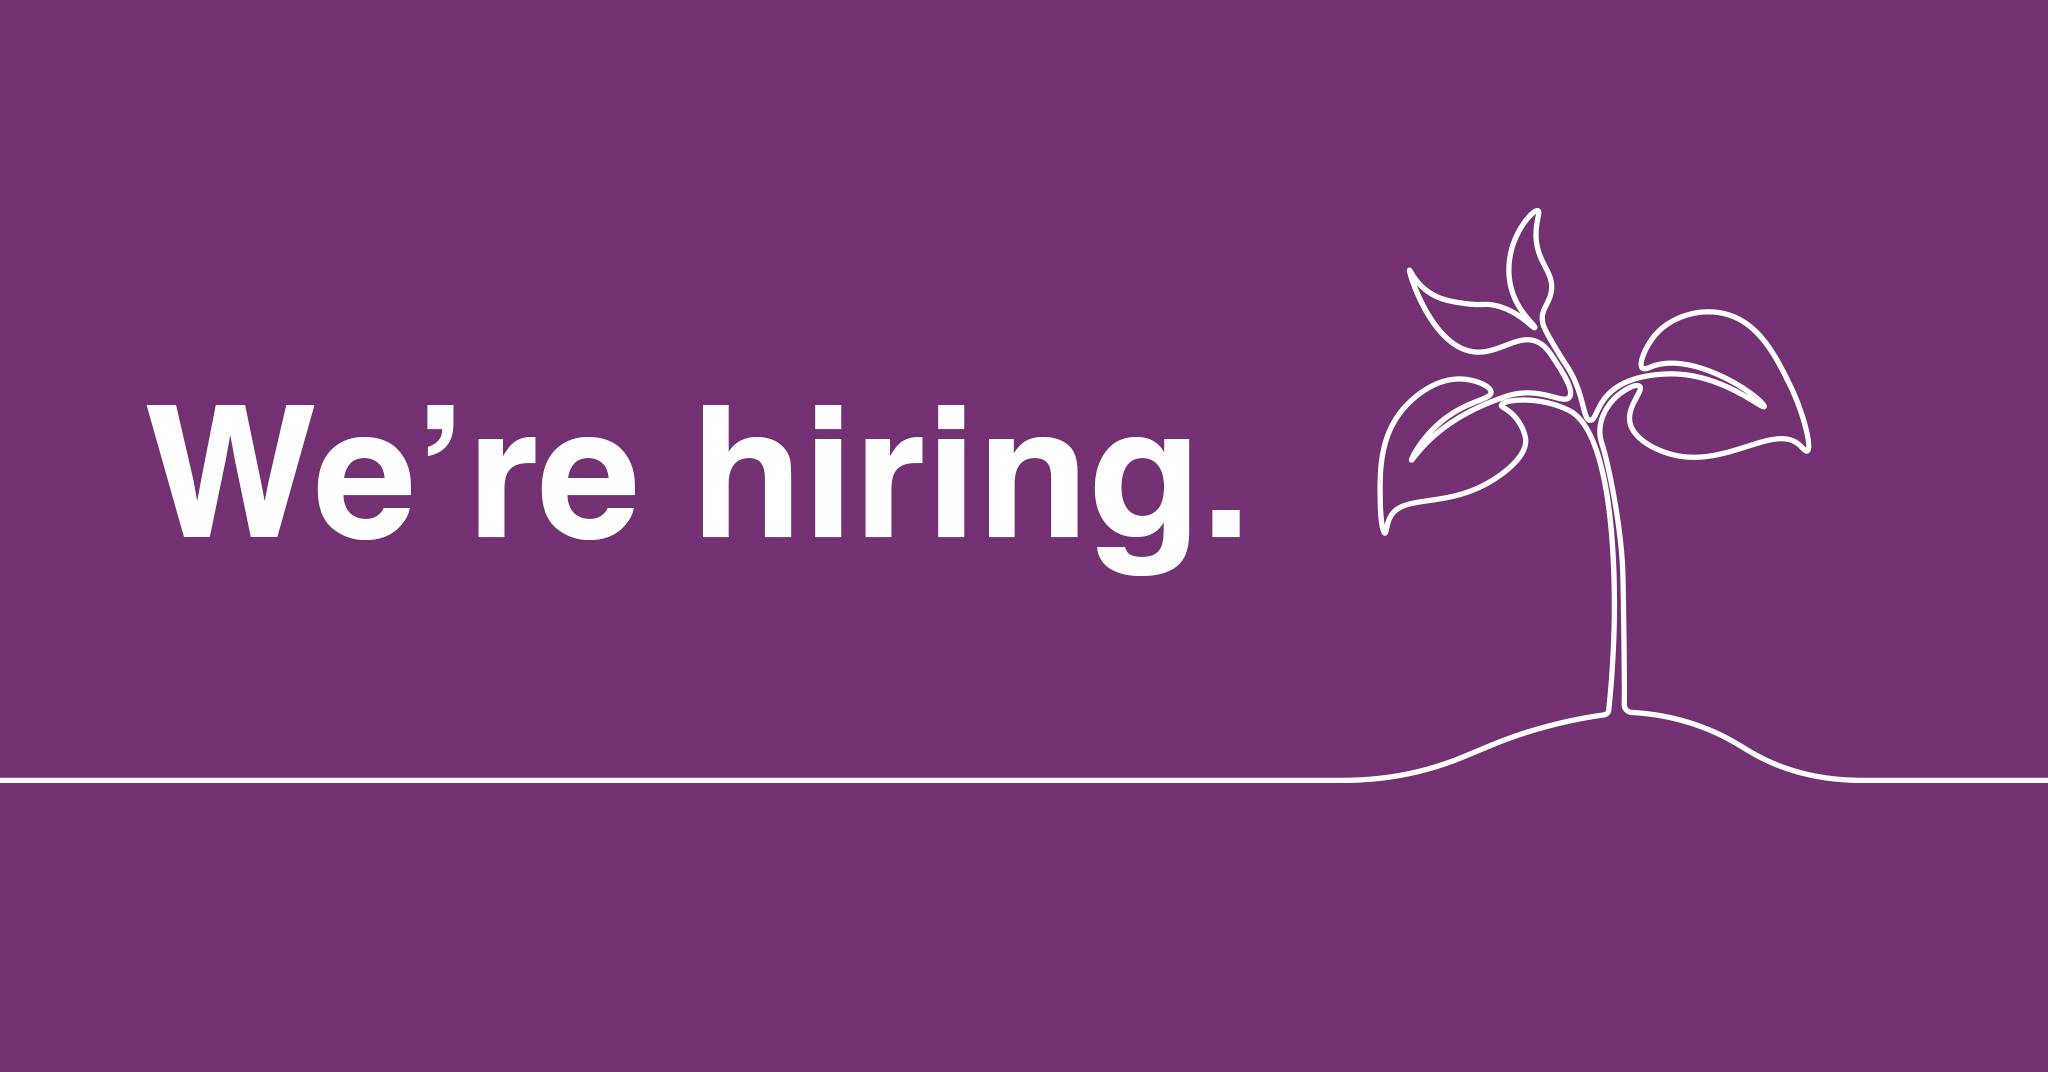 Purple image with white text: 'We're hiring.'